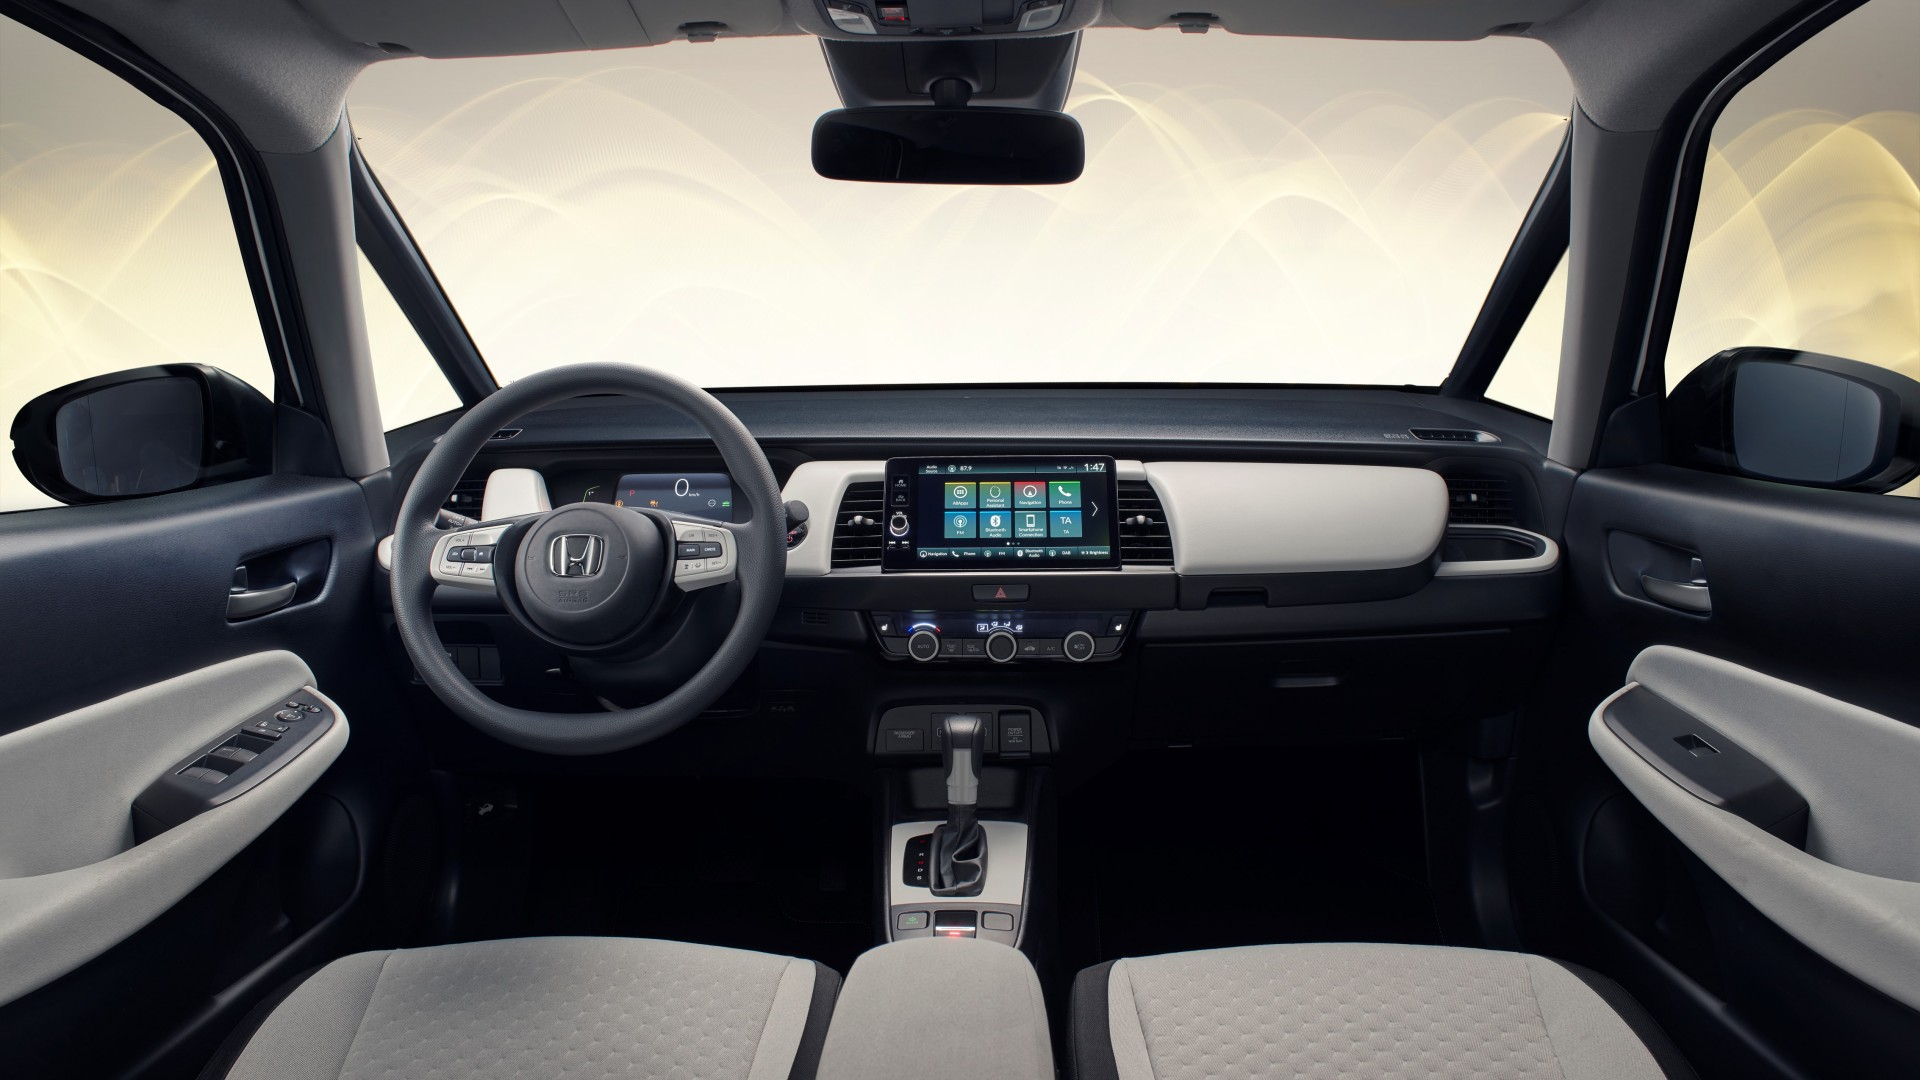 Honda Jazz 2020 Interior (1)